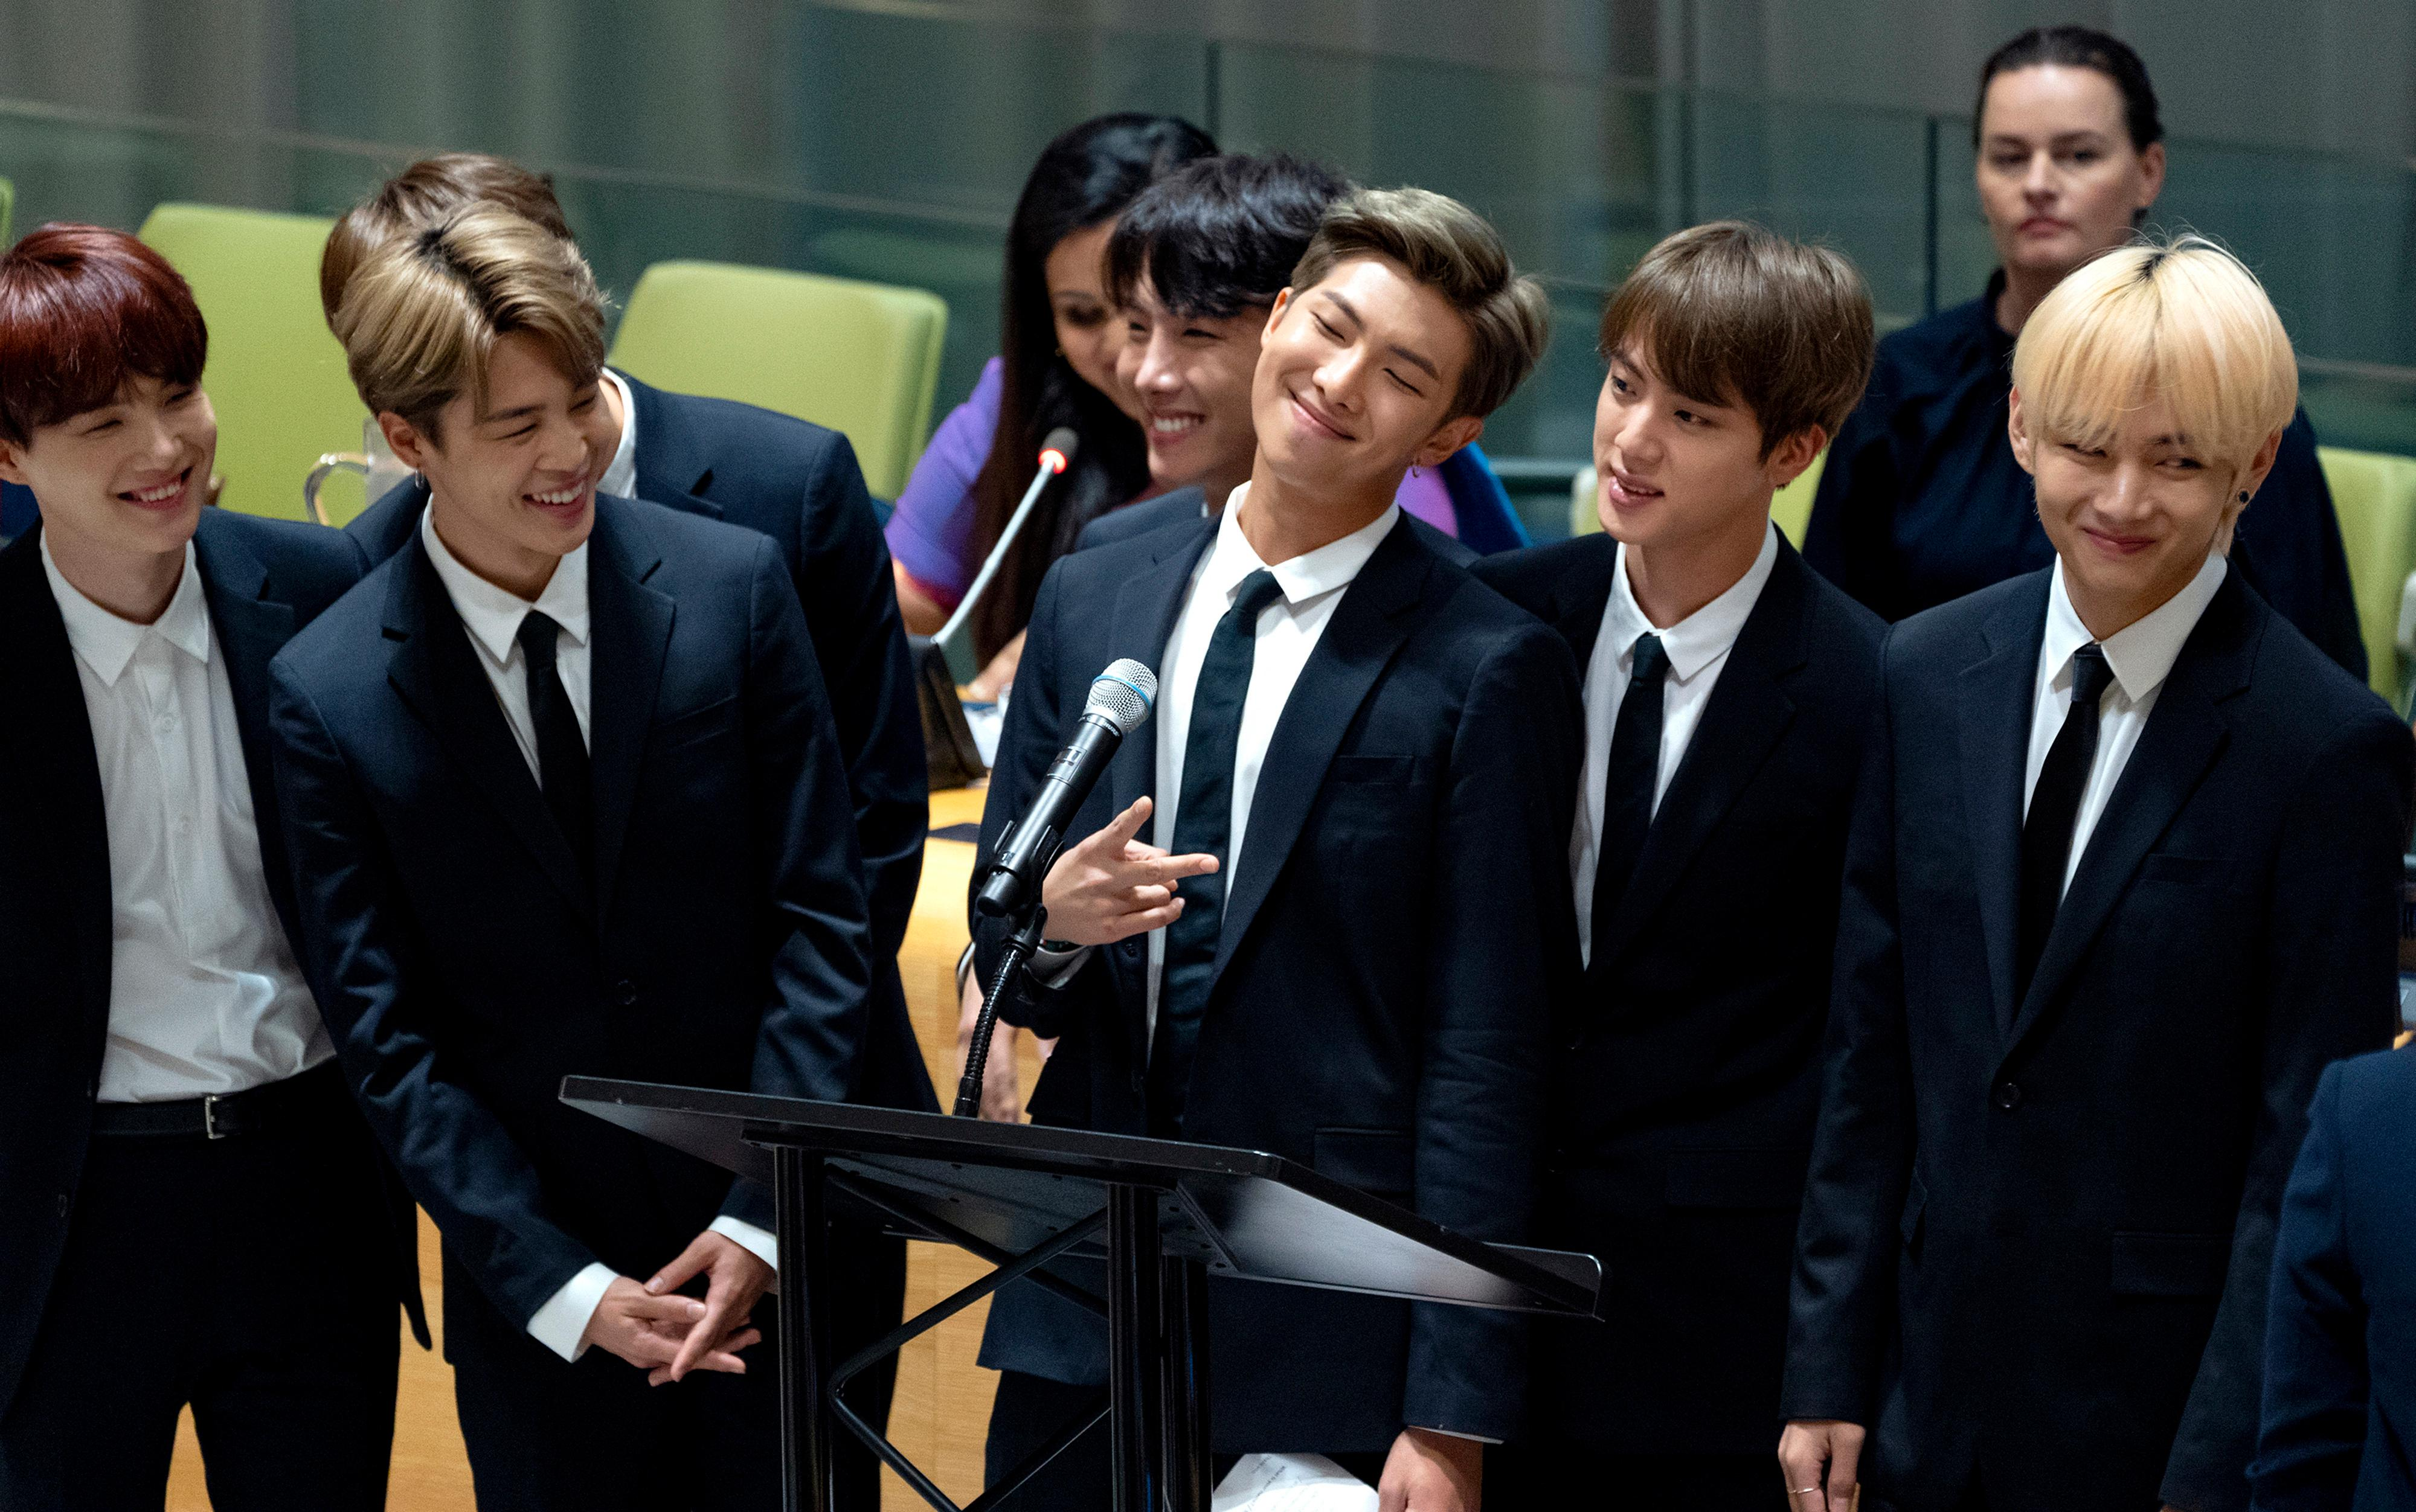 FILE- In this Sept. 24, 2018, file photo, members of the Korean K-Pop group BTS attend a meeting at the United Nations high level event regarding youth during the 73rd session of the United Nations General Assembly at U.N. headquarters. (AP Photo/Craig Ruttle, File)